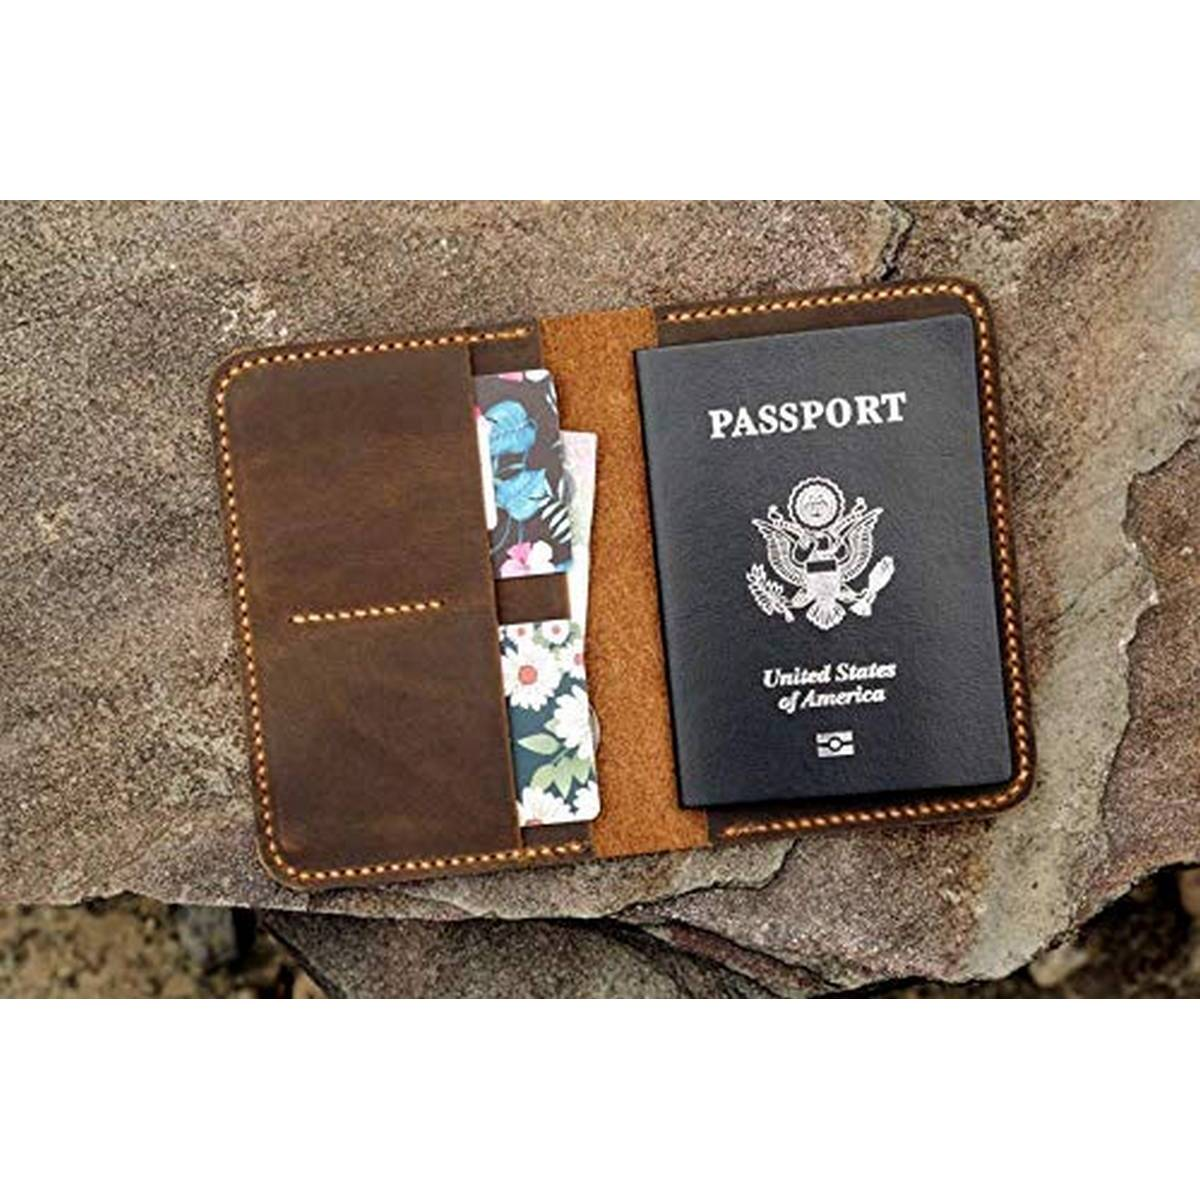 Leather Passport Cover - Travel Accessories Holder - Brown